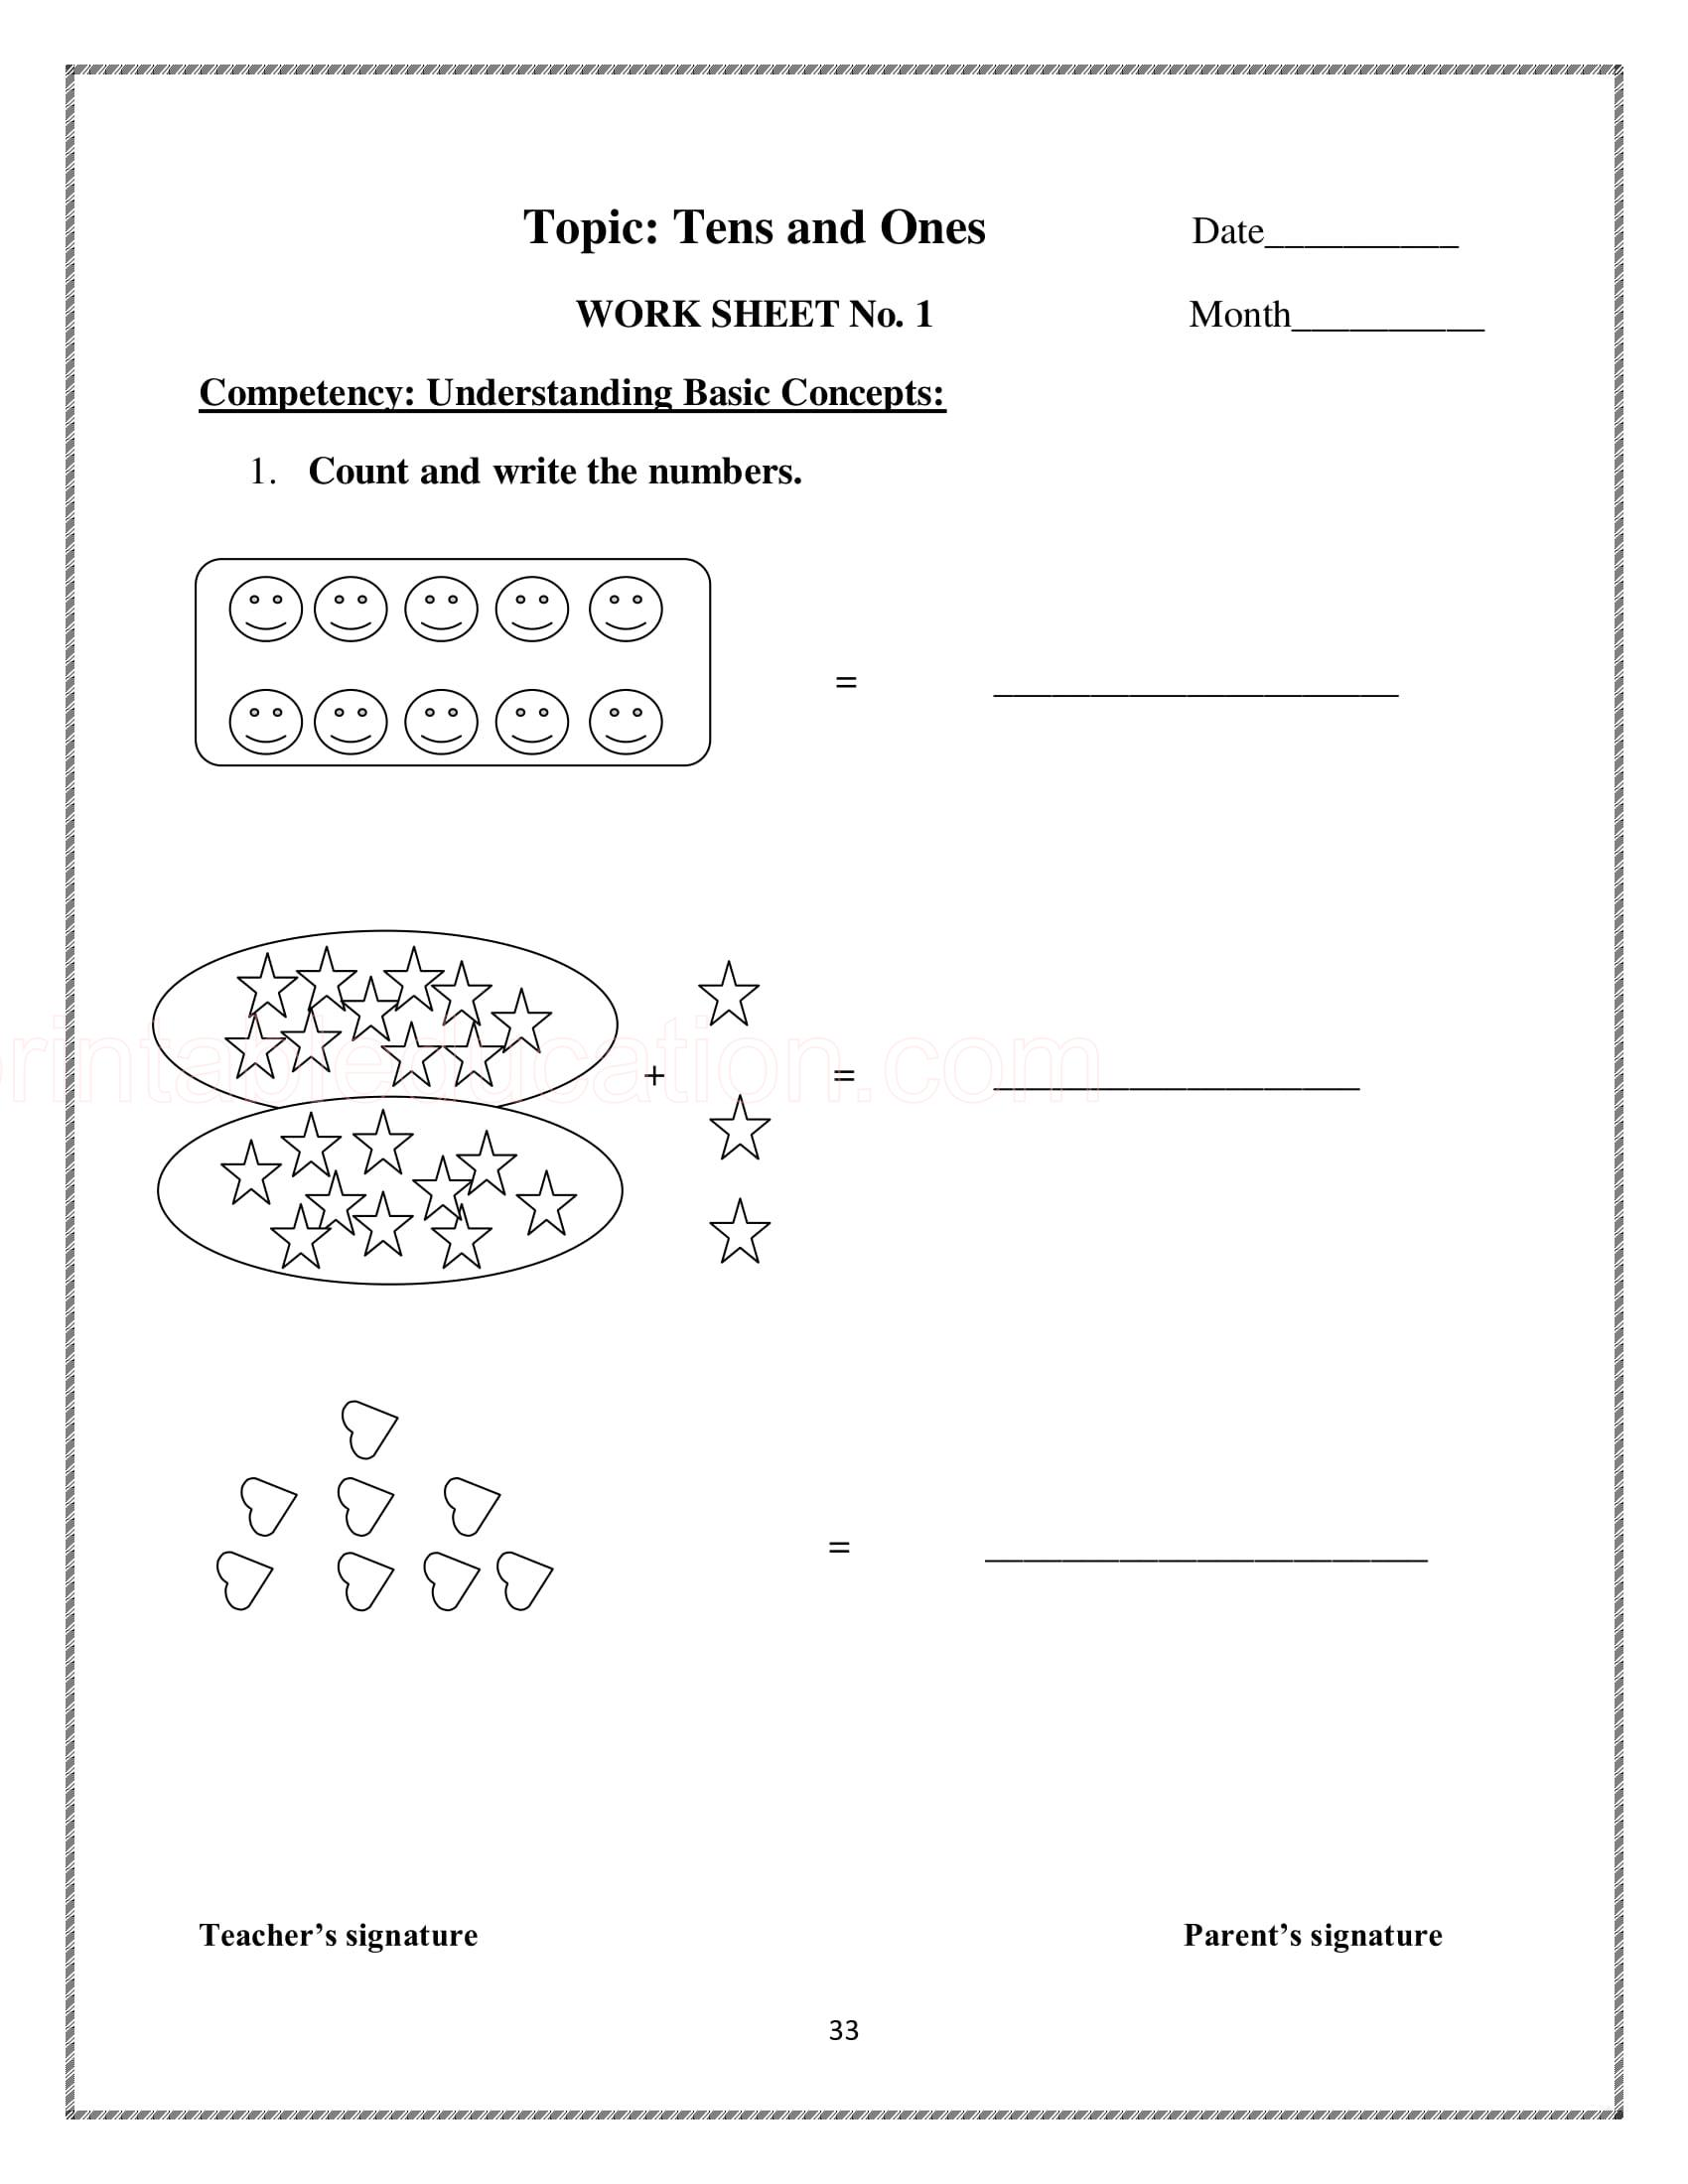 Math Practice Worksheets For 2nd Grade